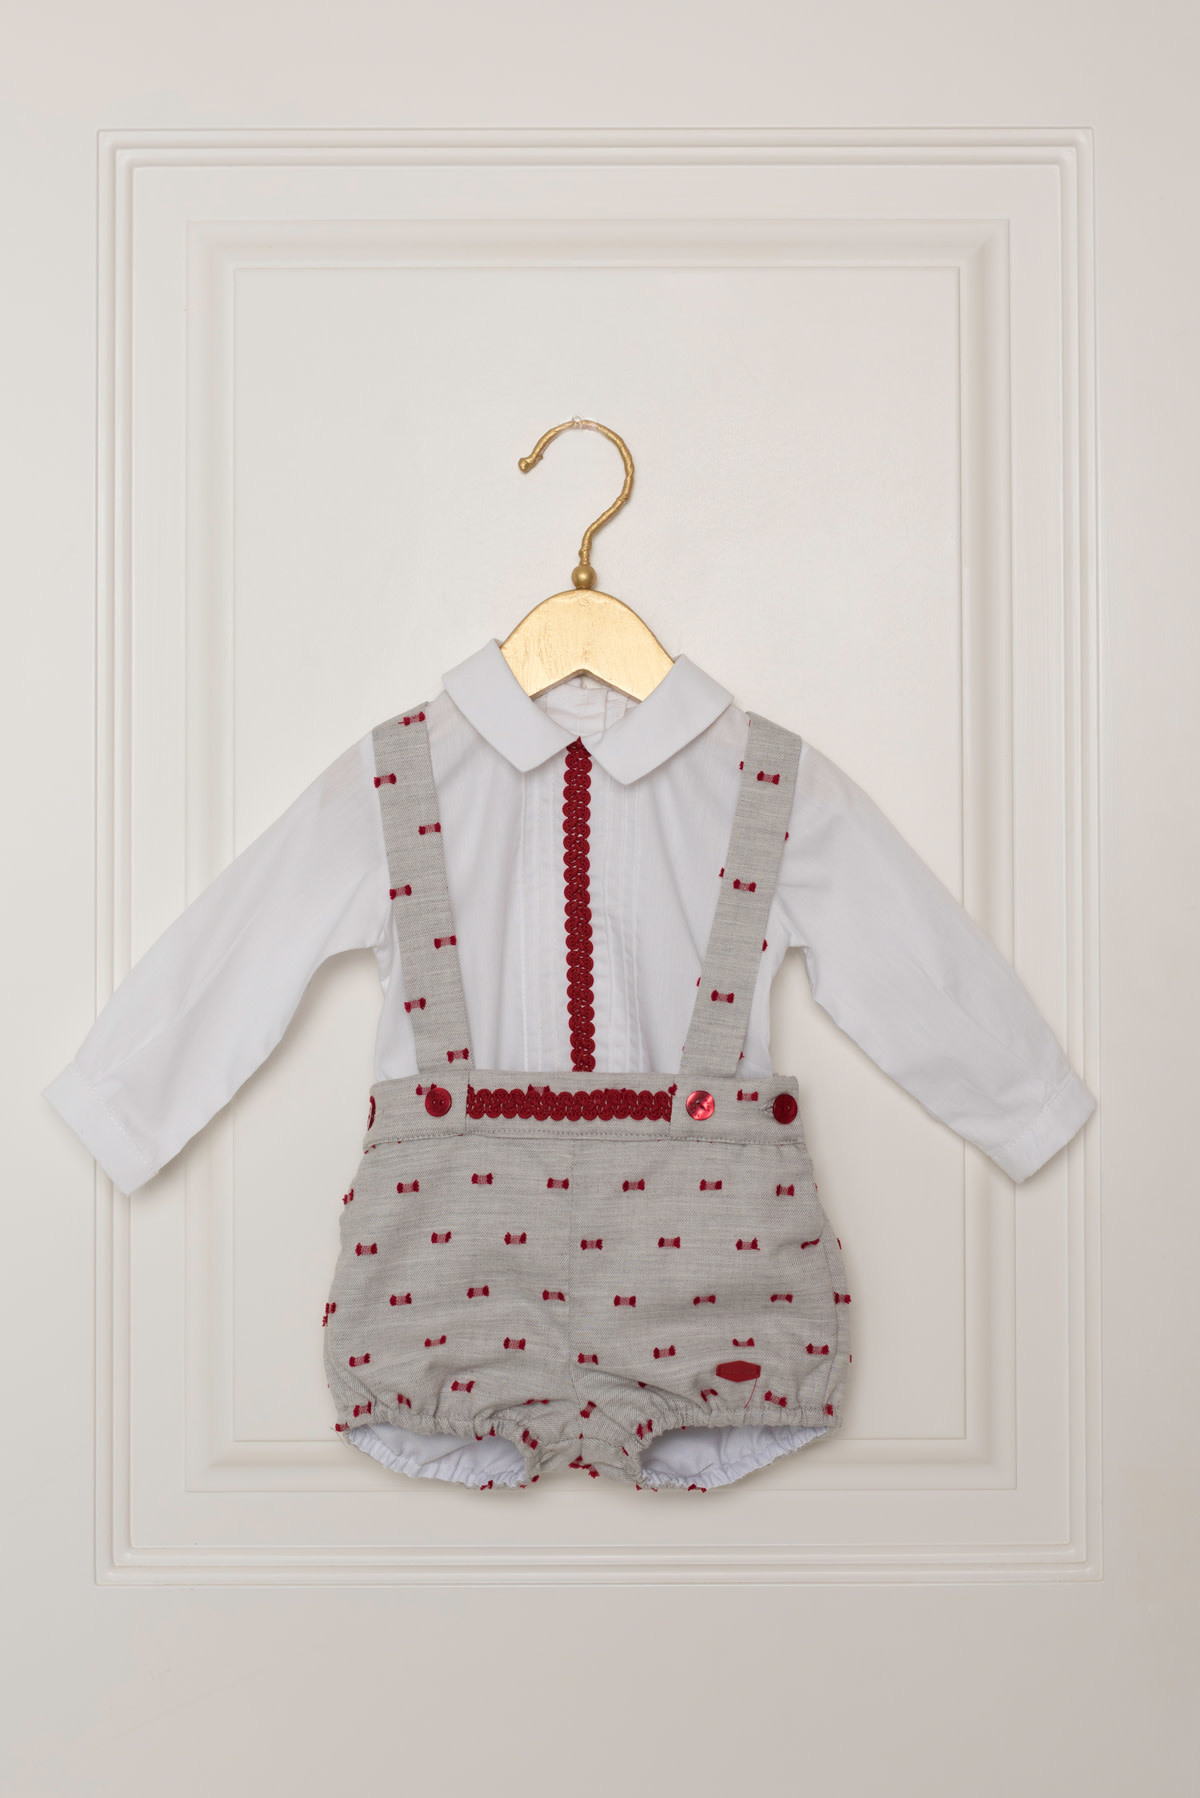 Dolce Petit Dolce Petit Baby Boys Short and Shirt Set Red and Grey 2009/23